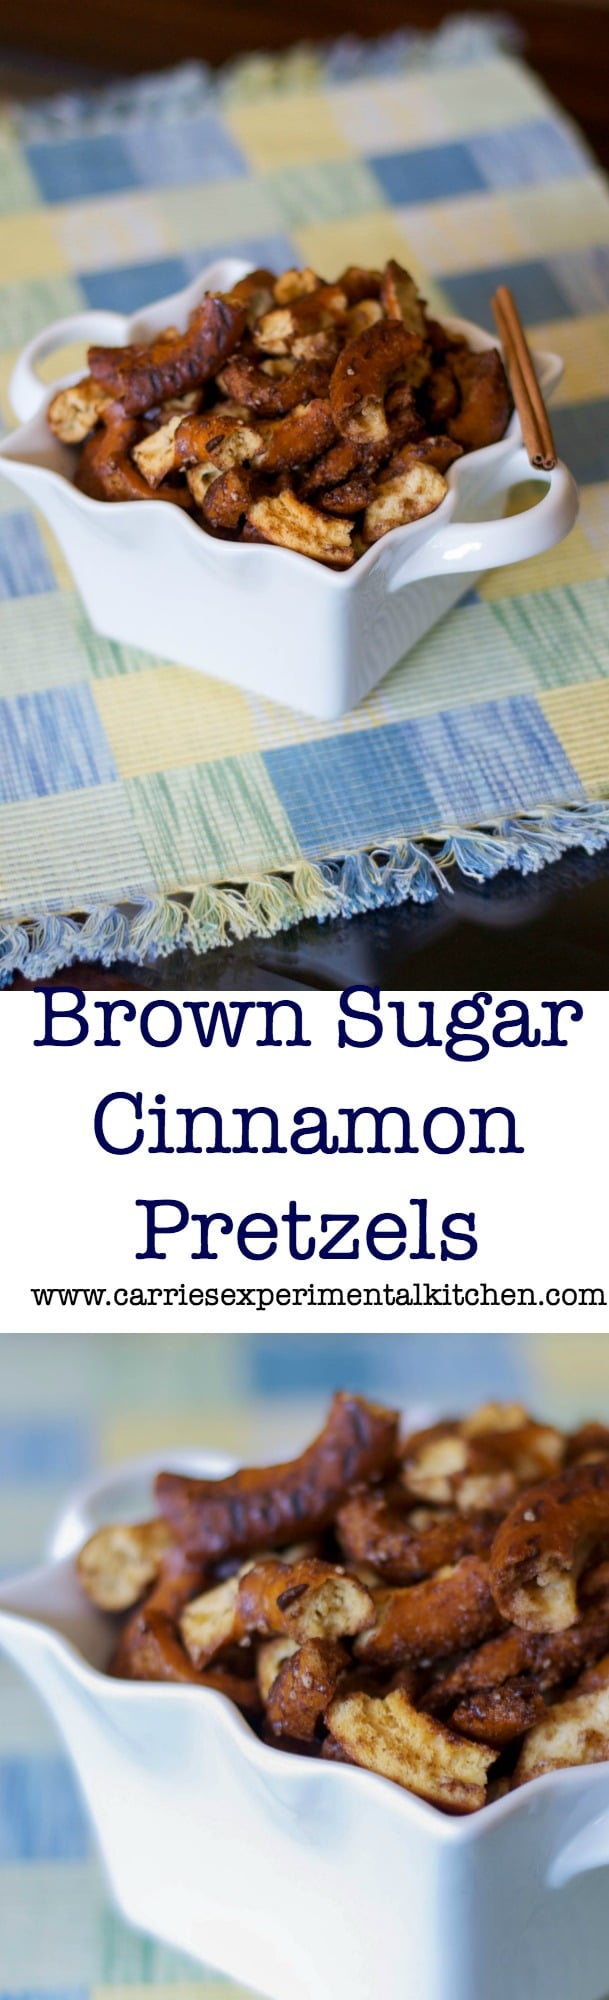 These Brown Sugar and Cinnamon Pretzels are so easy to make at home and have just the right amount of sweet to be called a dessert.